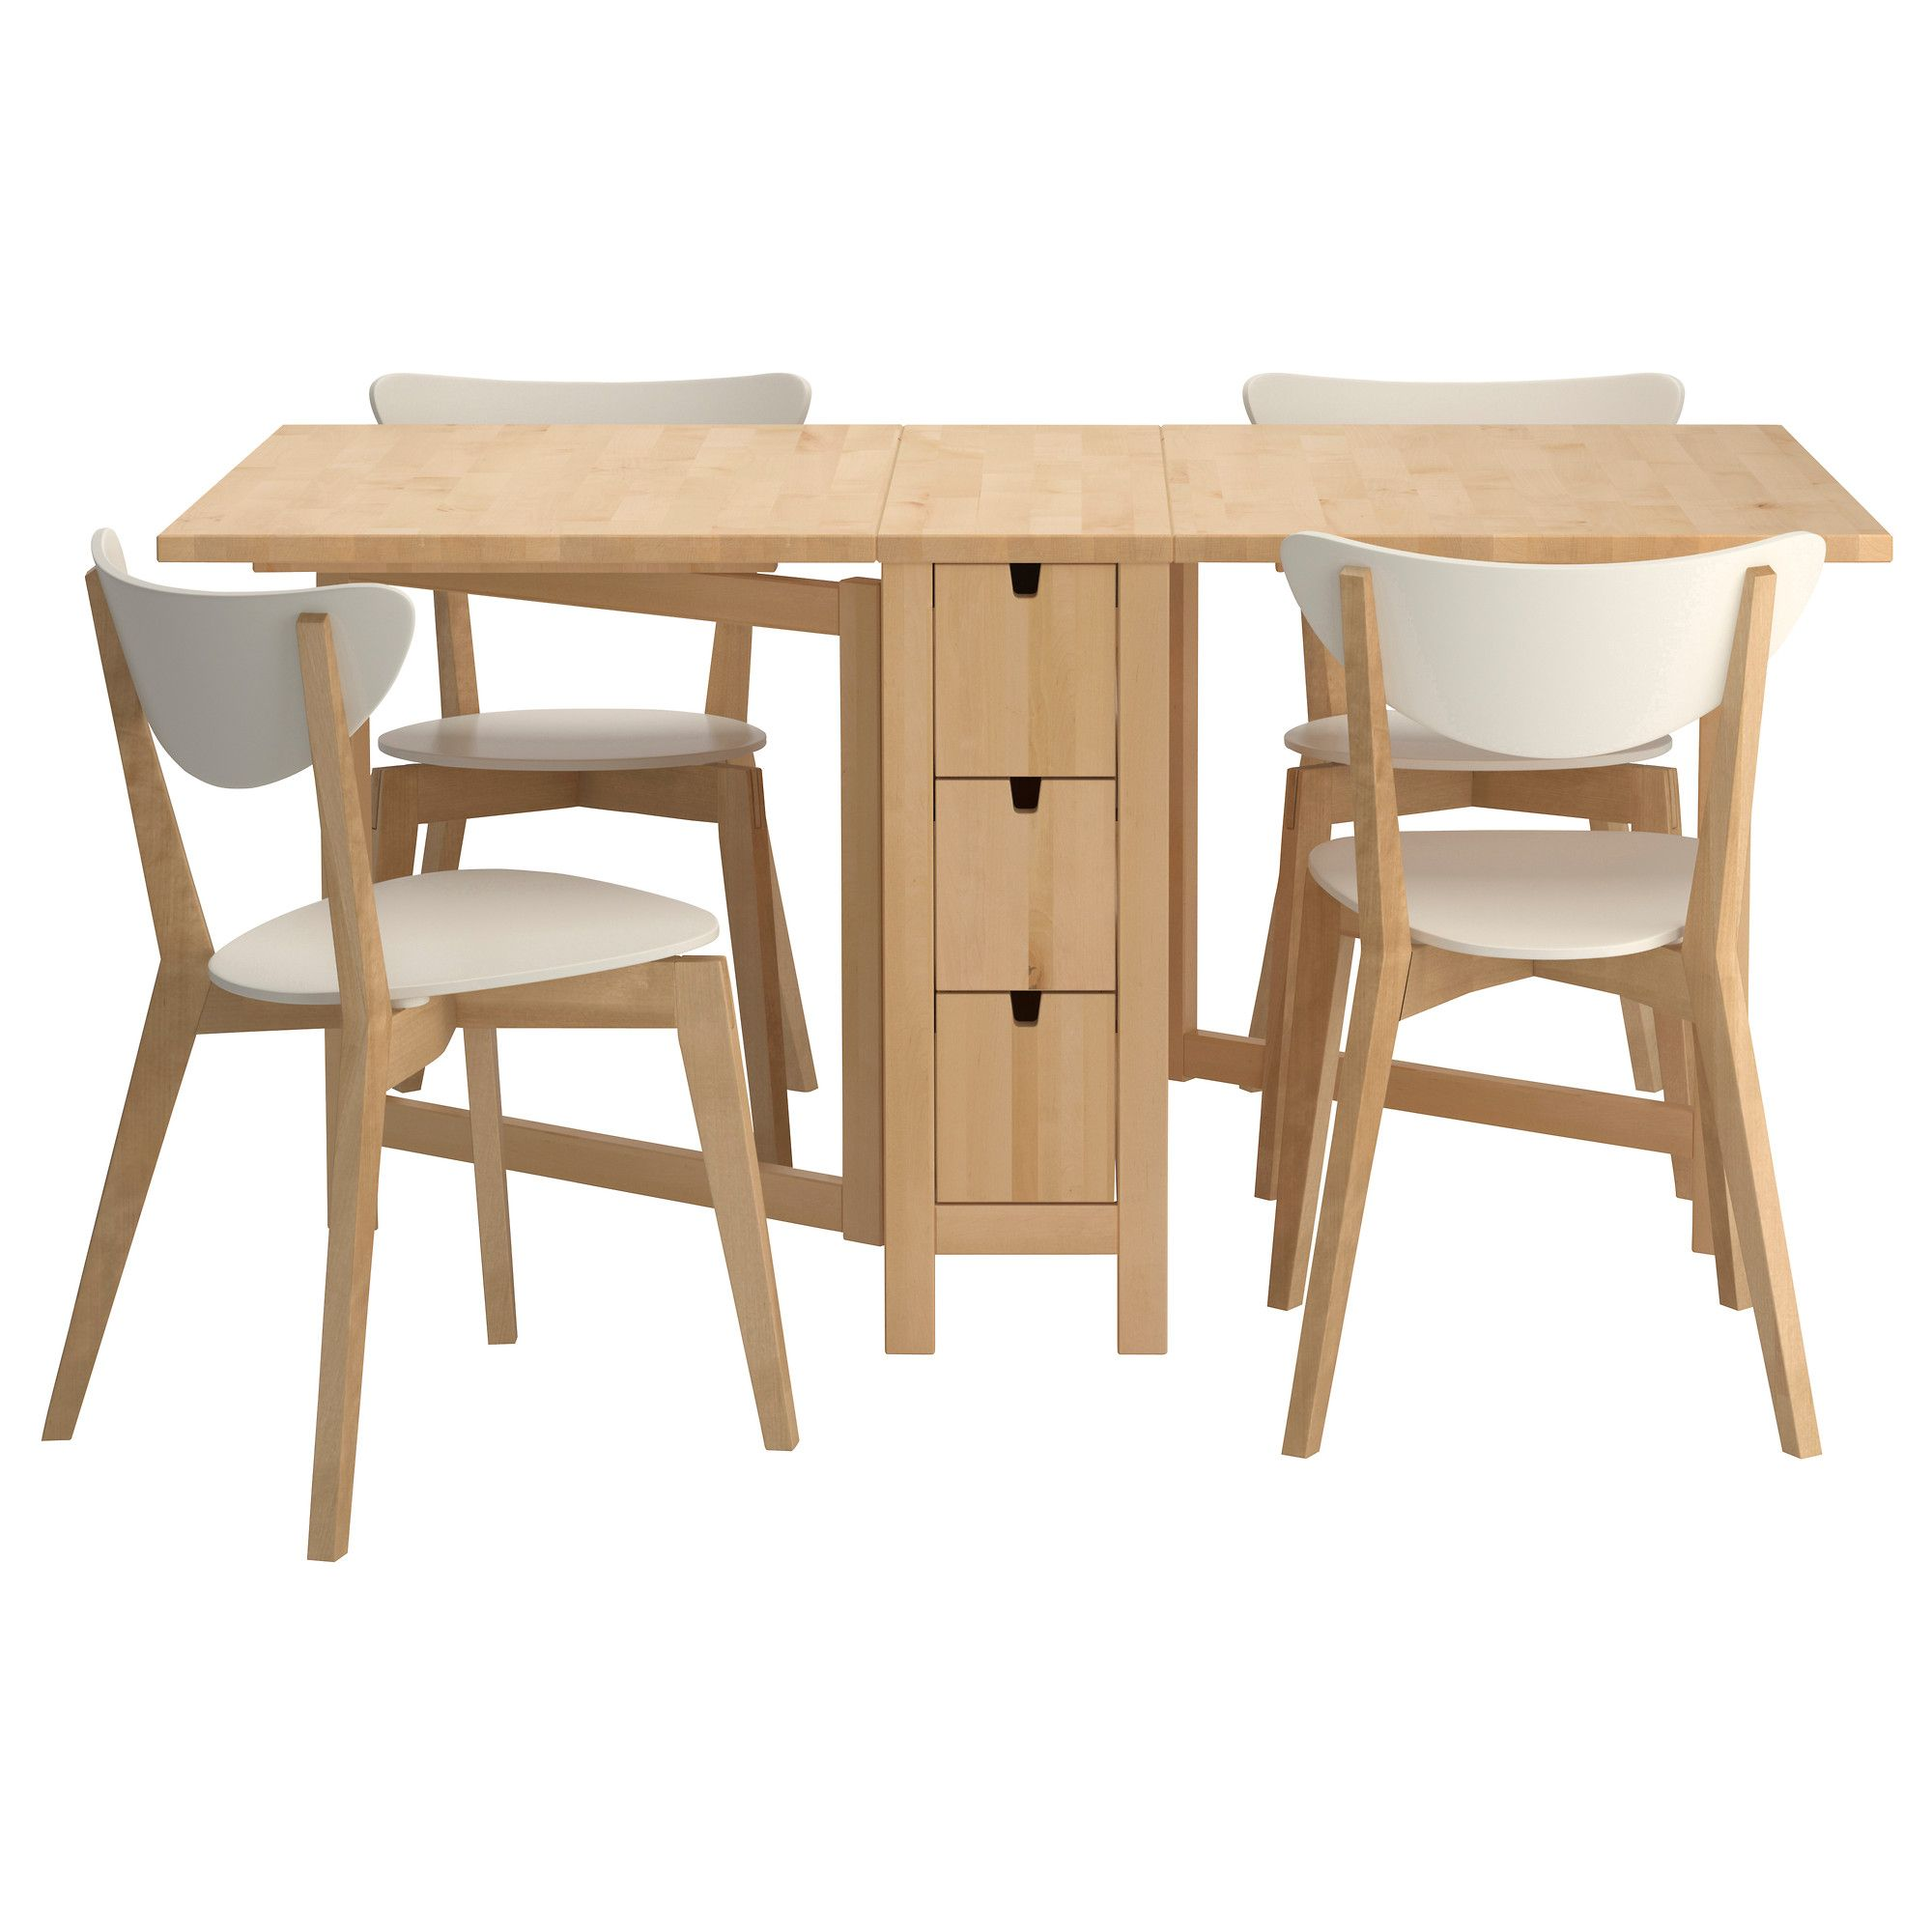 Furniture, Beautiful Maple Wood Veneer Foldable Console Dining Table Set  Maple Wood Veneer Dining Chair With White Padded Seat Design Ideas ~  Folding Dining ...